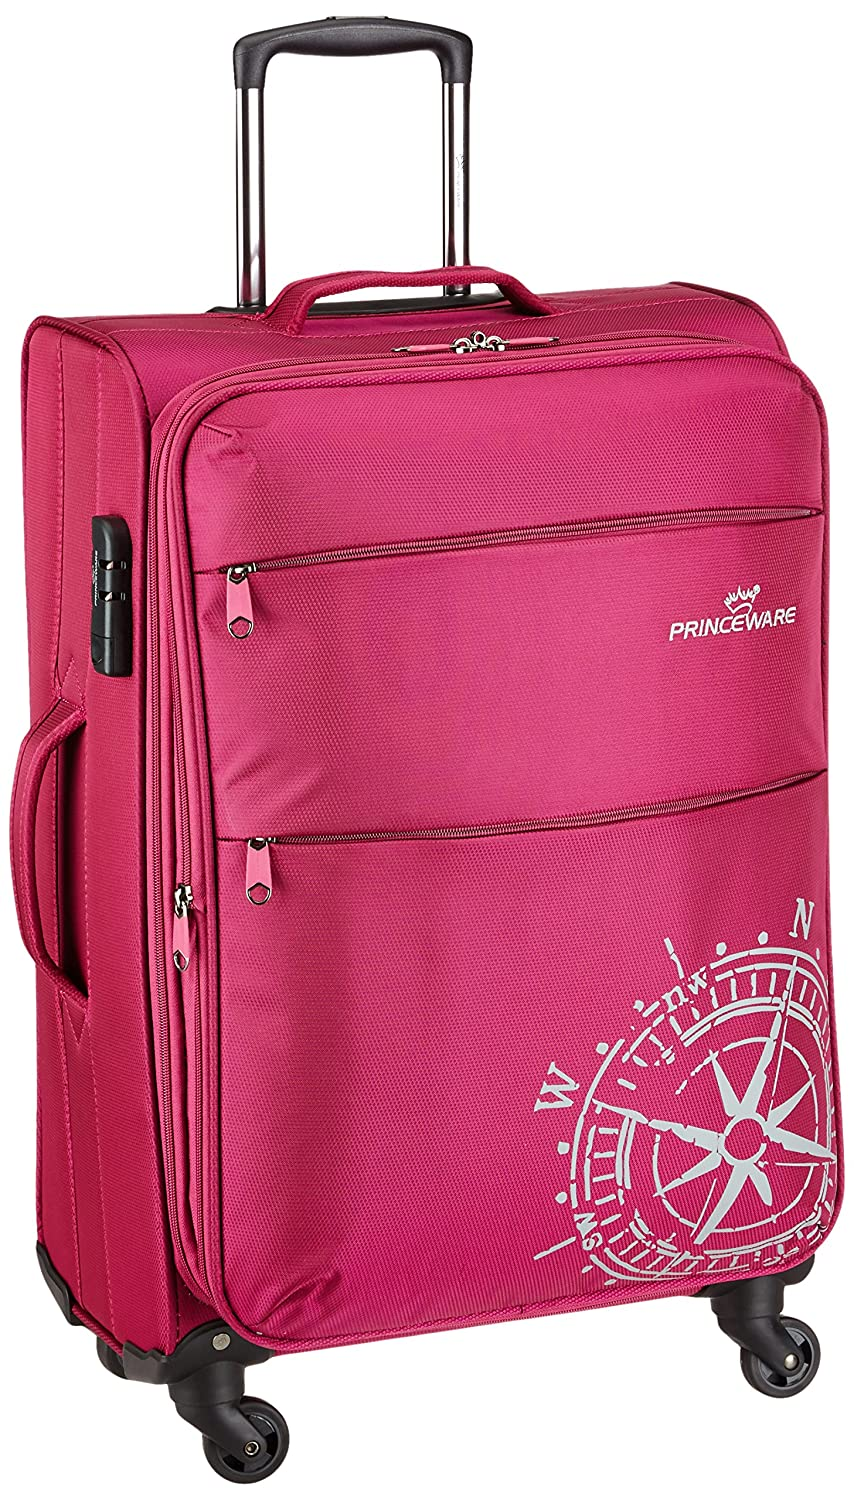 Princeware Geolite Carry-On Suitcase at Flat 70% off + Free International Warranty